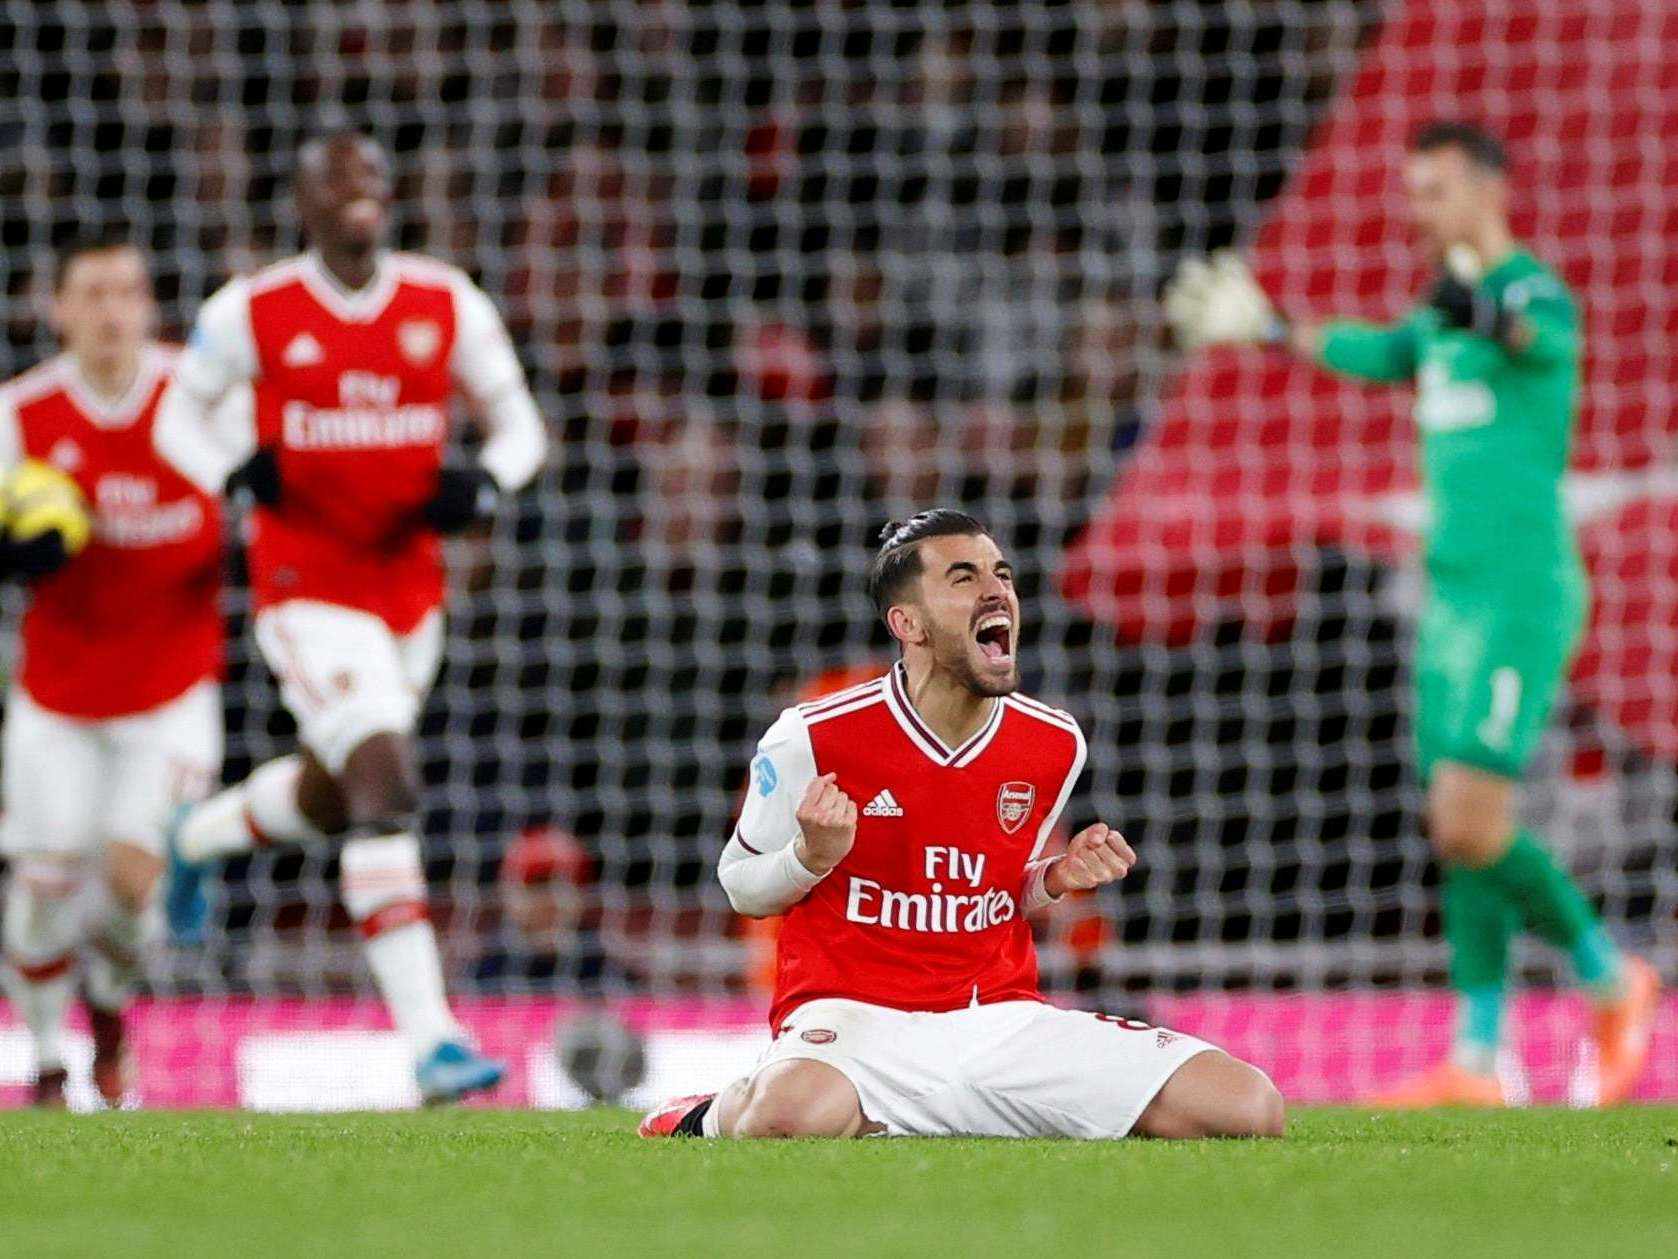 Dani Ceballos may not be Arsenal's own but he may have secured his own future